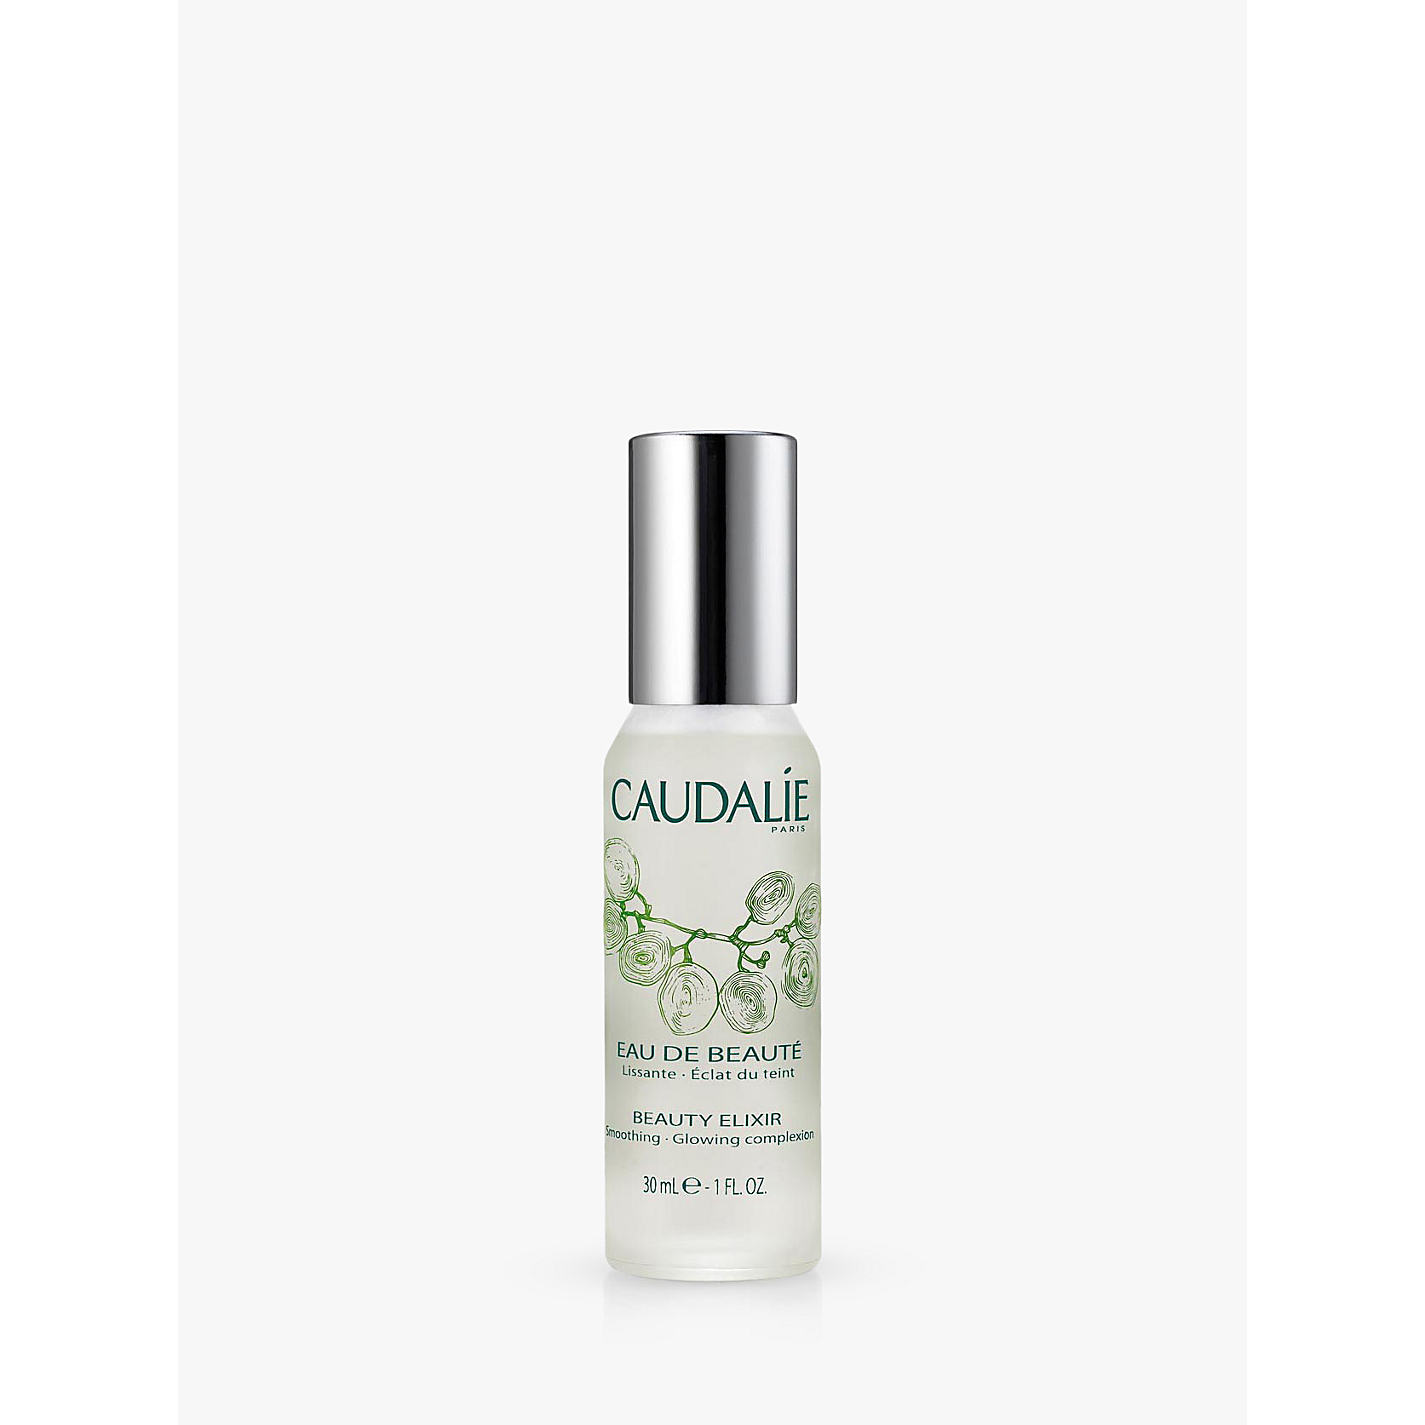 All caudalie facial products